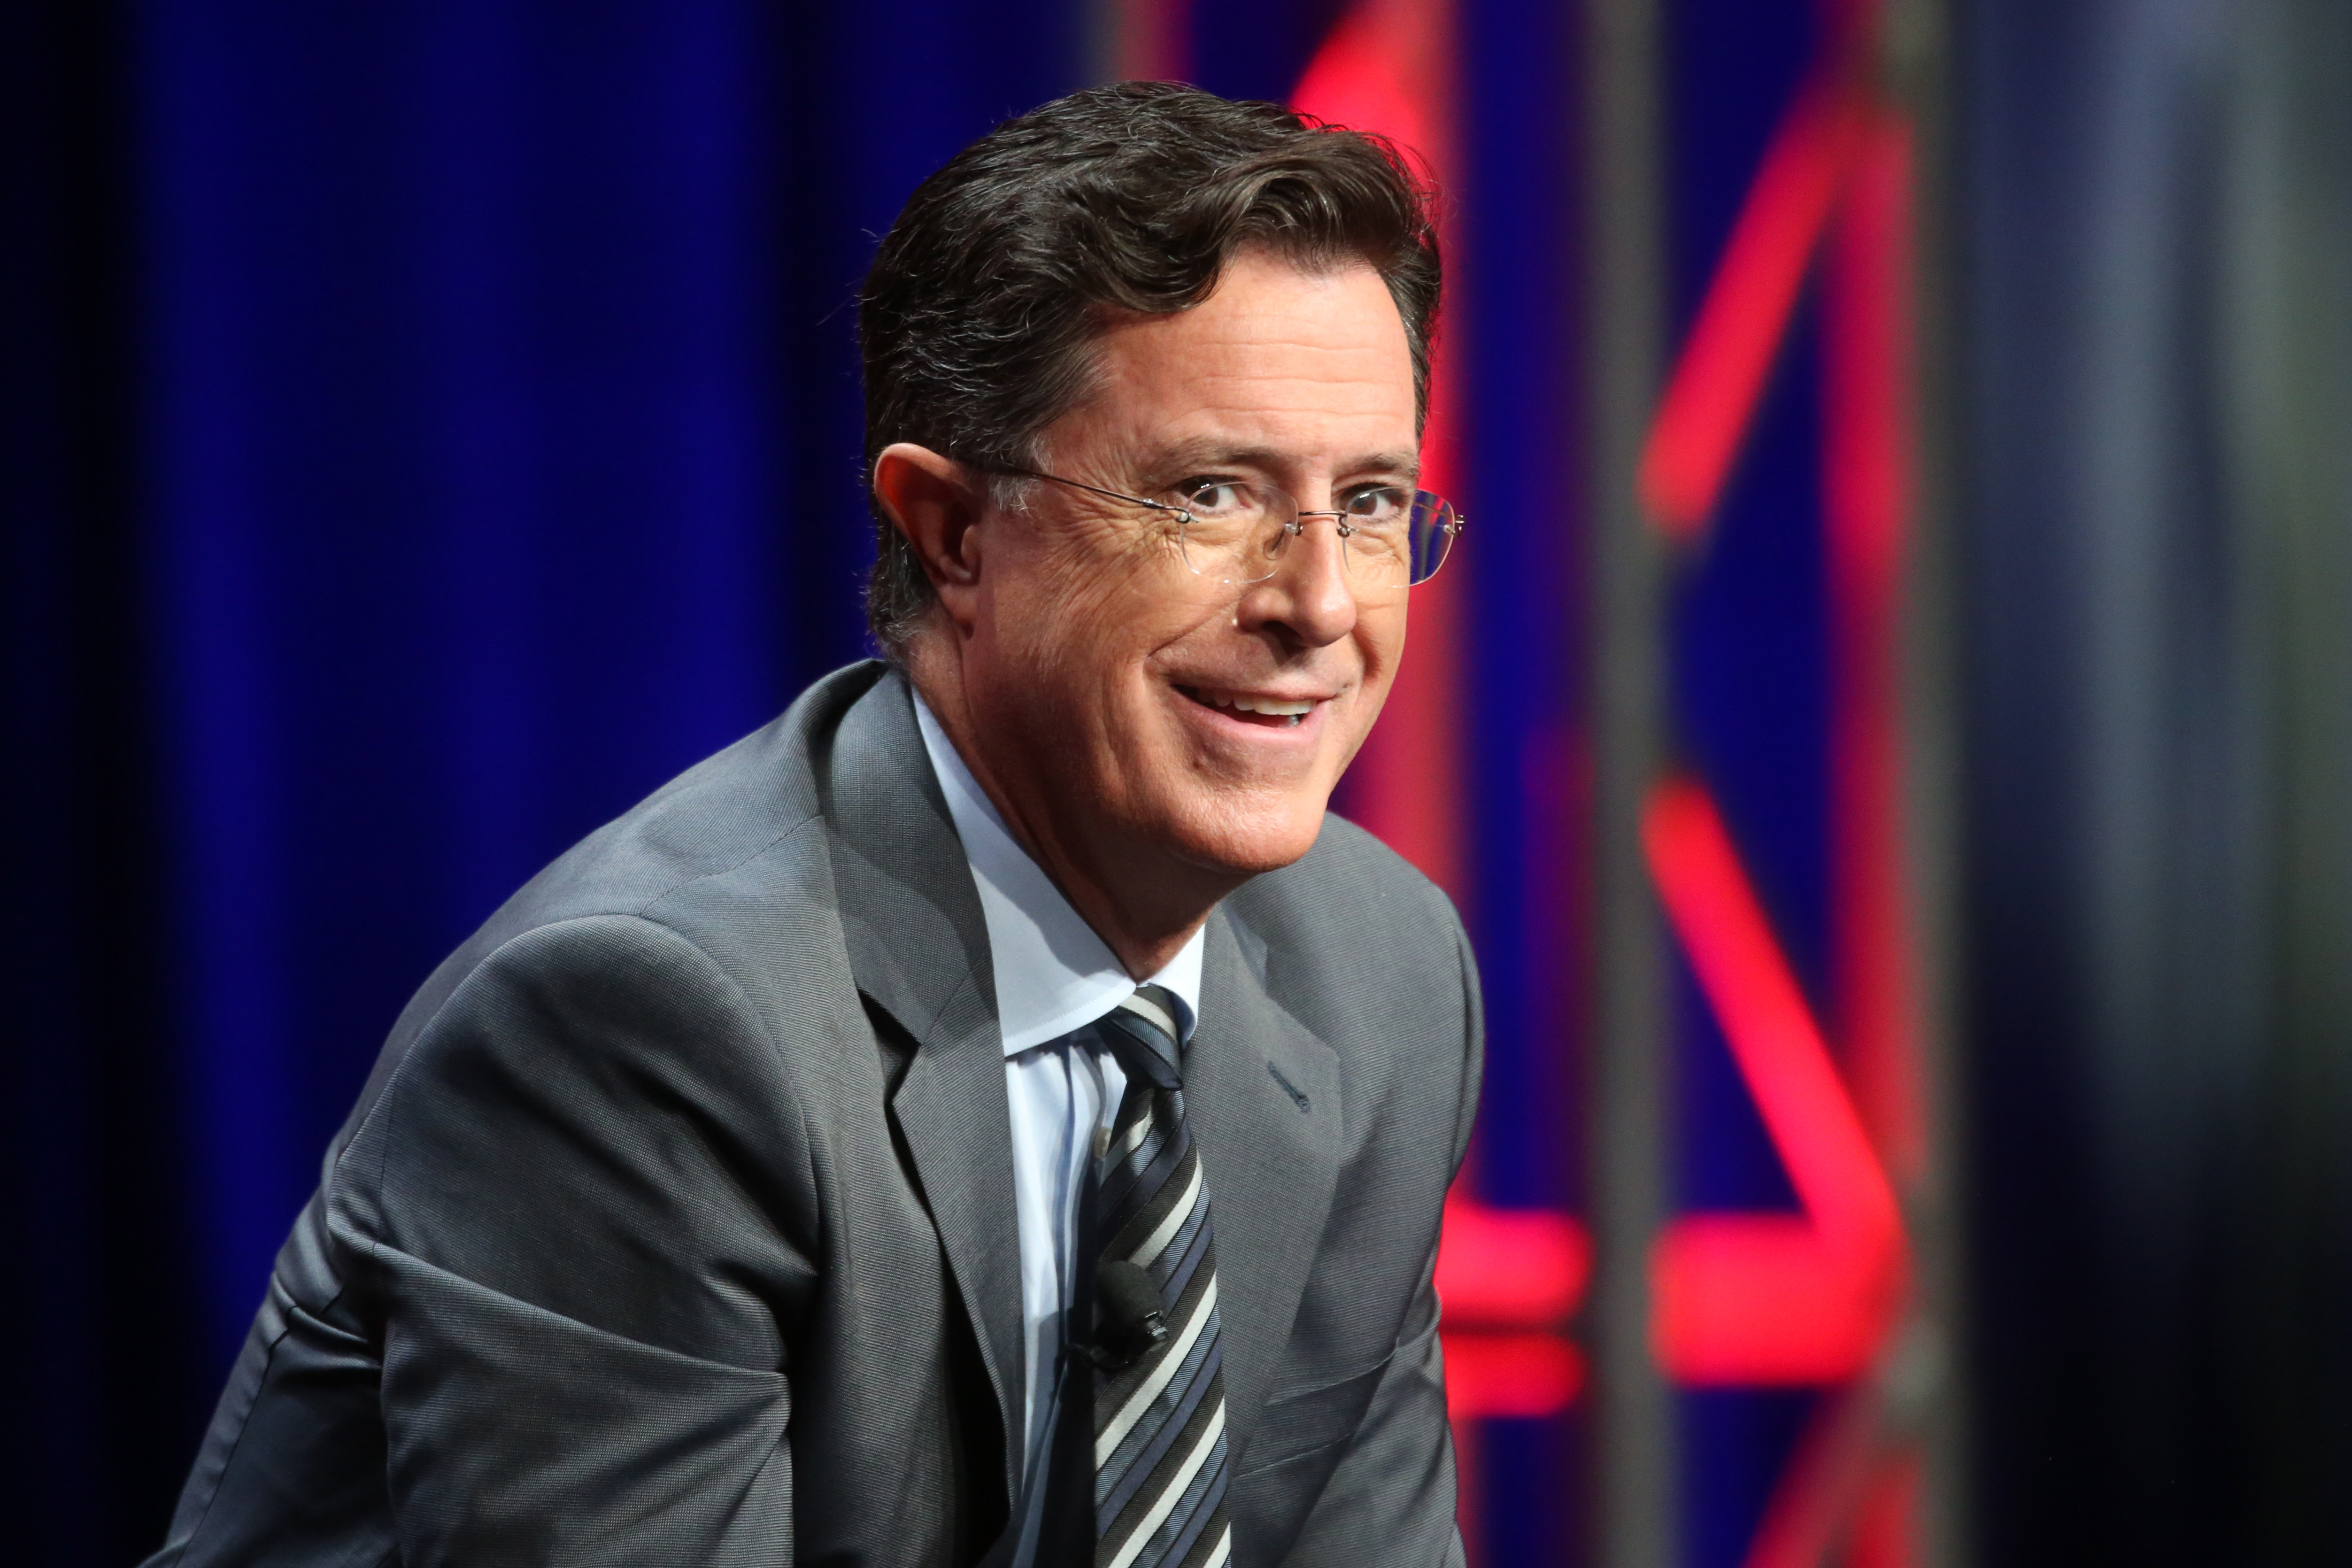 Stephen Colbert onstage during the 'The Late Show with Stephen Colbert' panel discussion at the CBS portion of the 2015 Summer TCA Tour at The Beverly Hilton Hotel on August 10, 2015 in Beverly Hills, California.